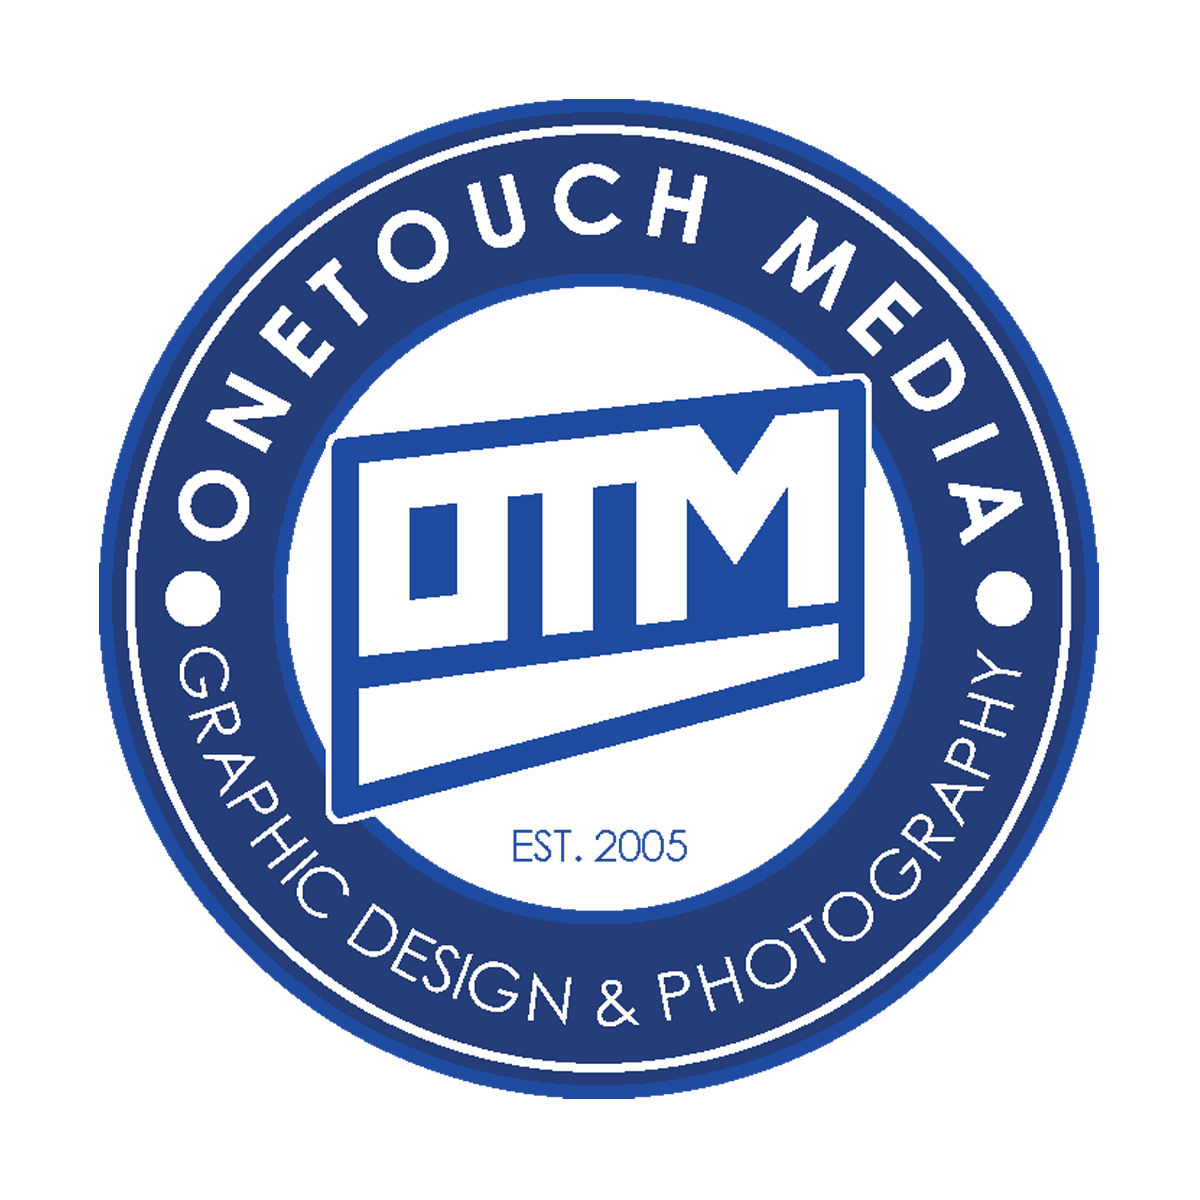 OneTouch Media Graphic Design & Photography Inc.